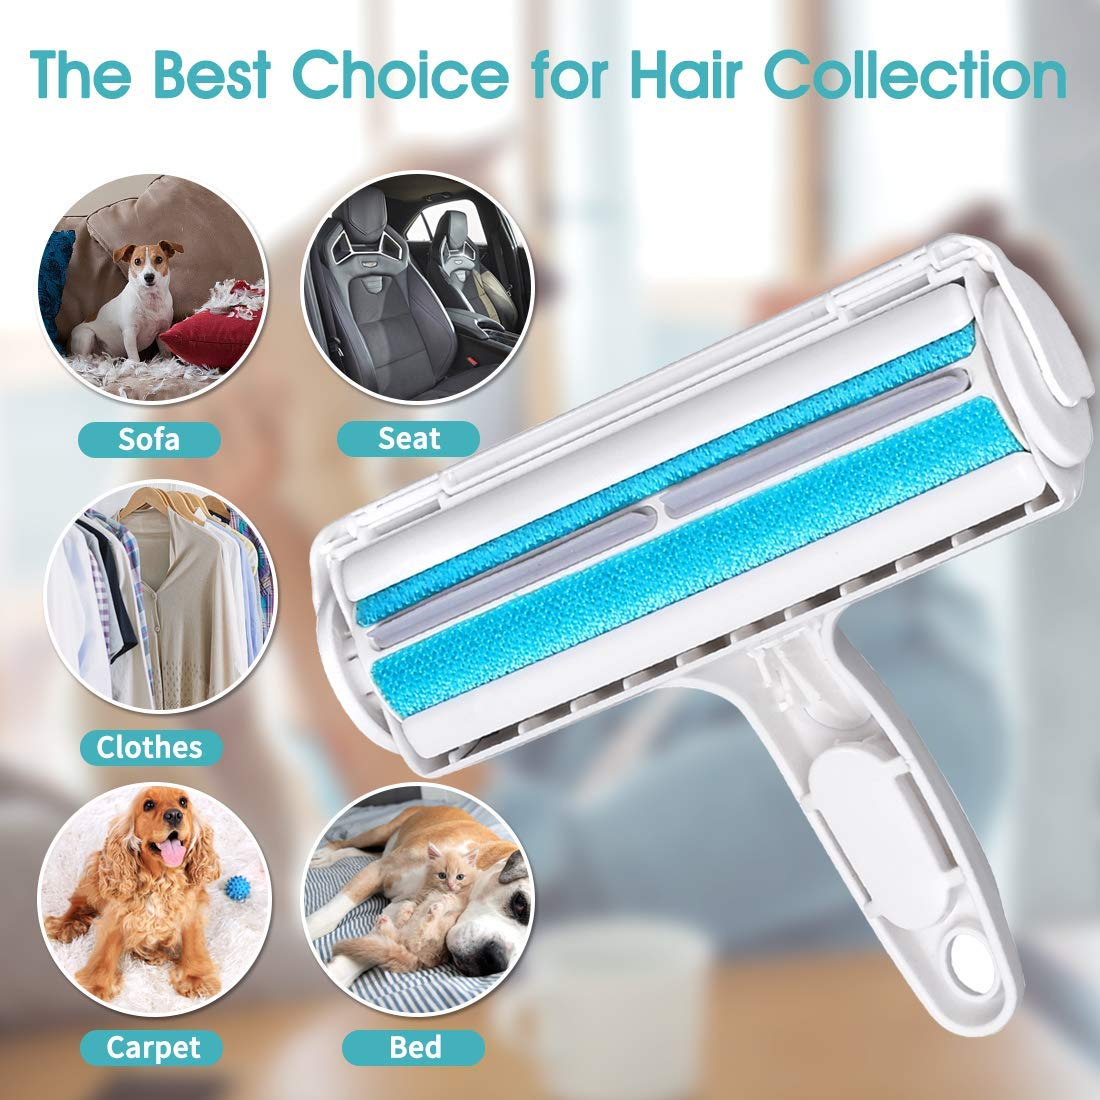 Bedding Sinwind Reusable Dog Cat Hair Remover Roller,Easy to Clean Lint Remover,For Furniture Clothing and More. Carpets